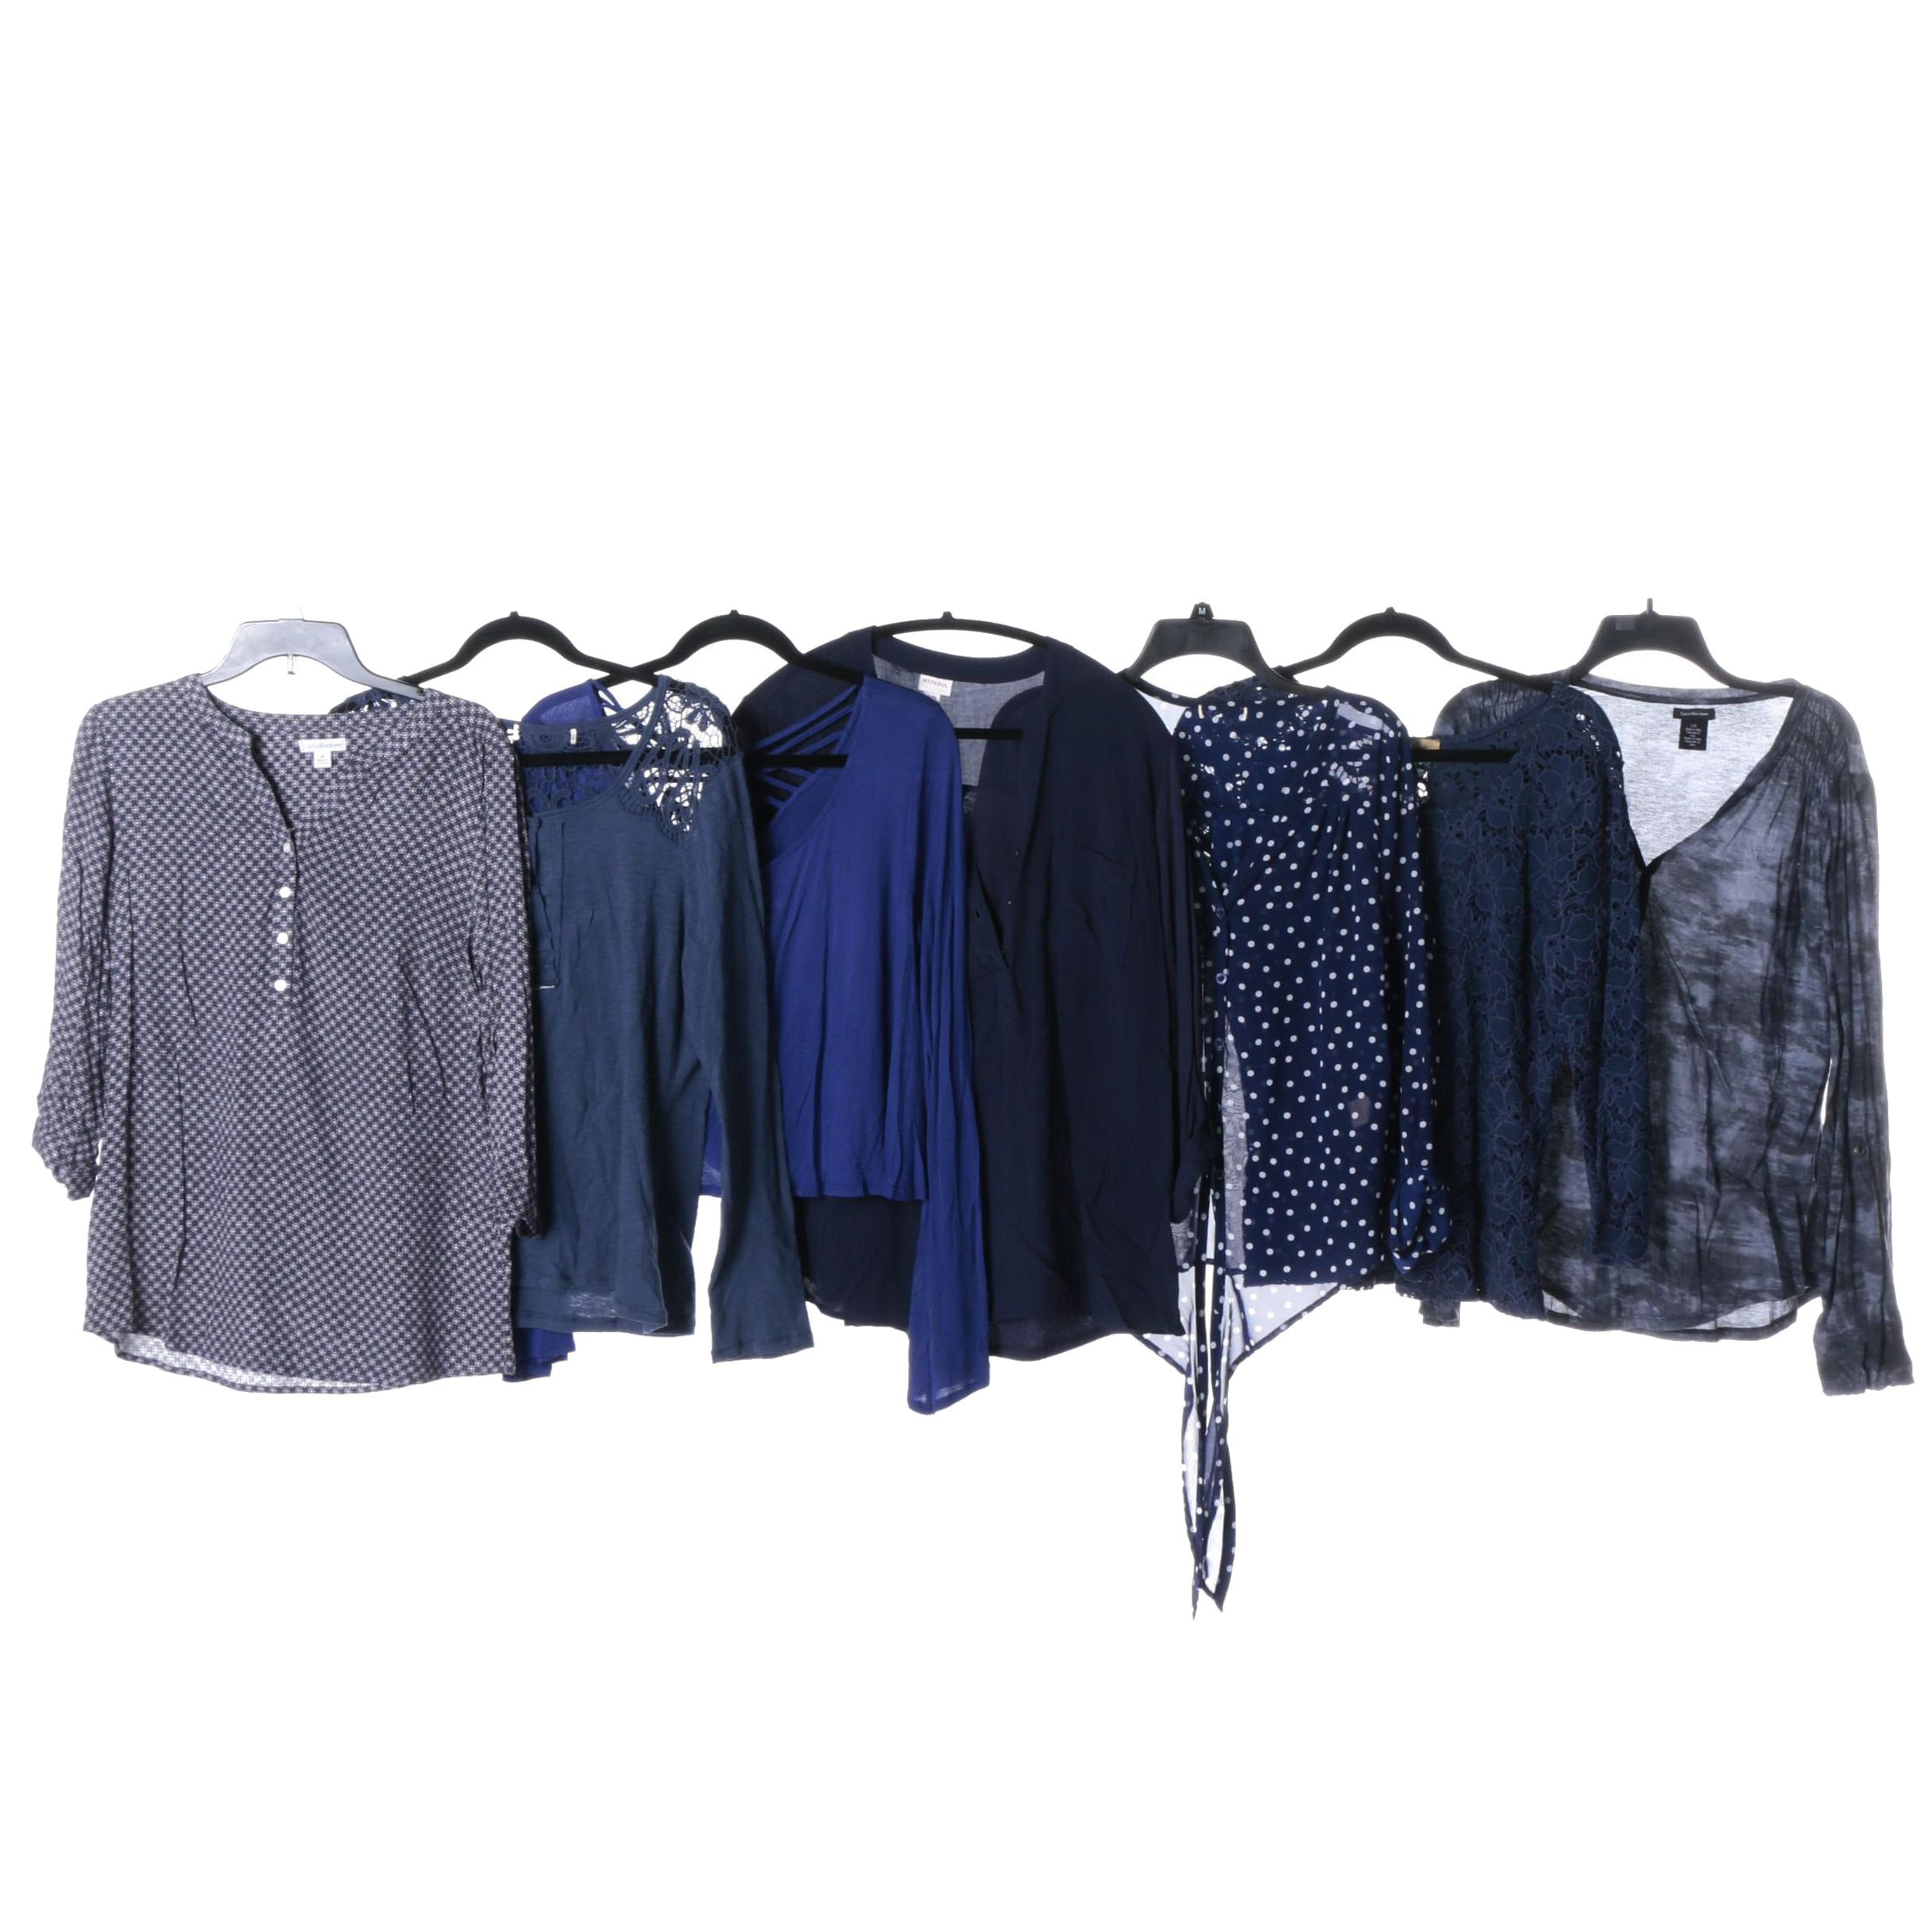 Women's Blue Tops Separates